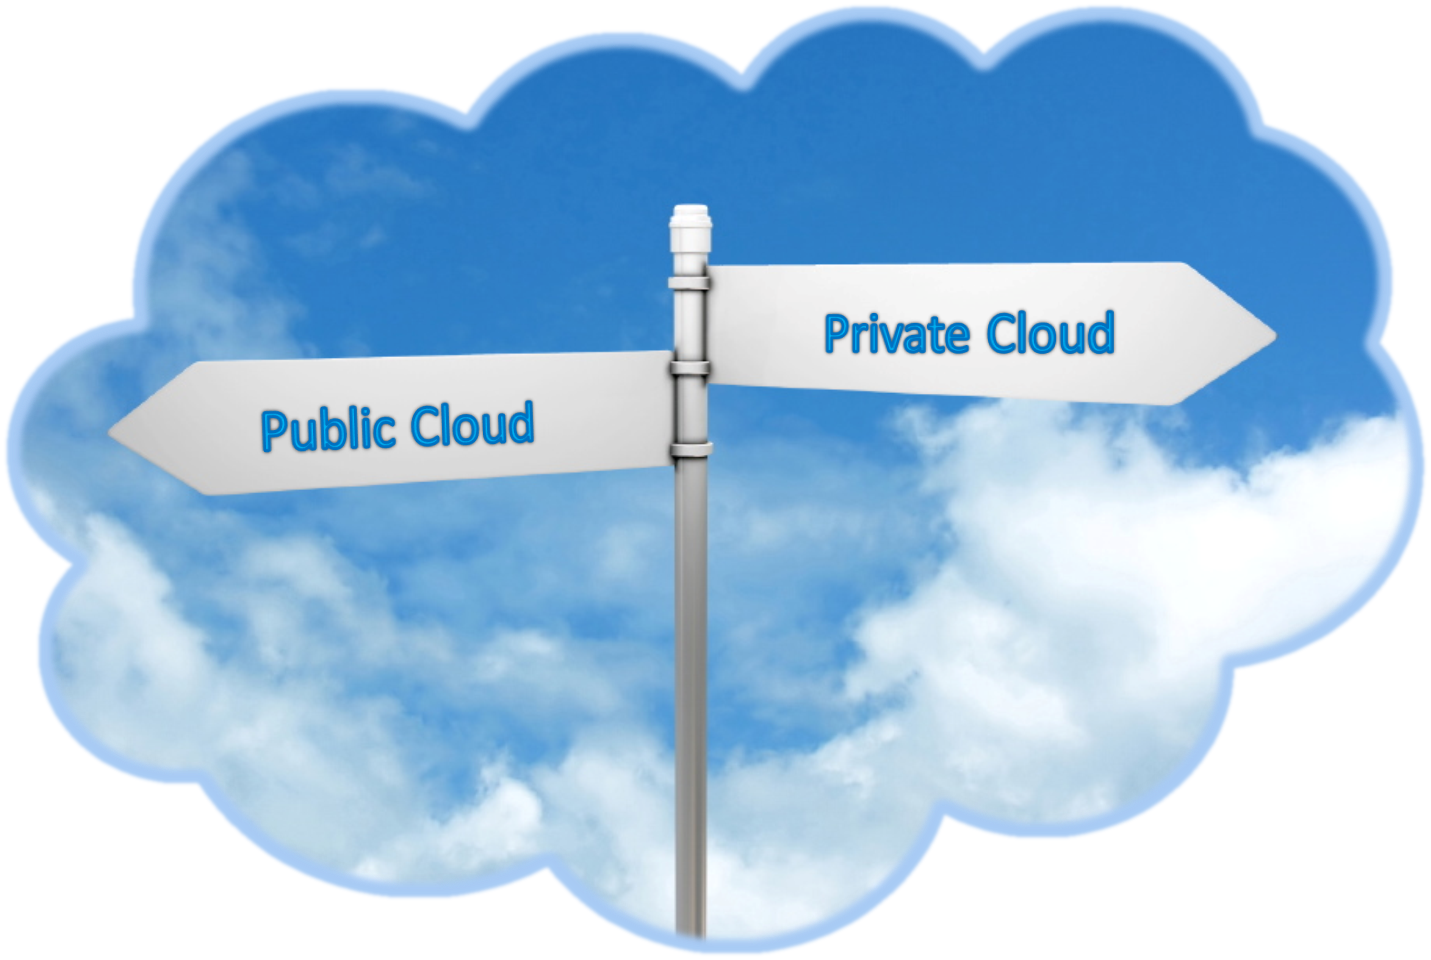 Public vs Private Cloud: Why The Public Cloud Is A Real Threat To Security